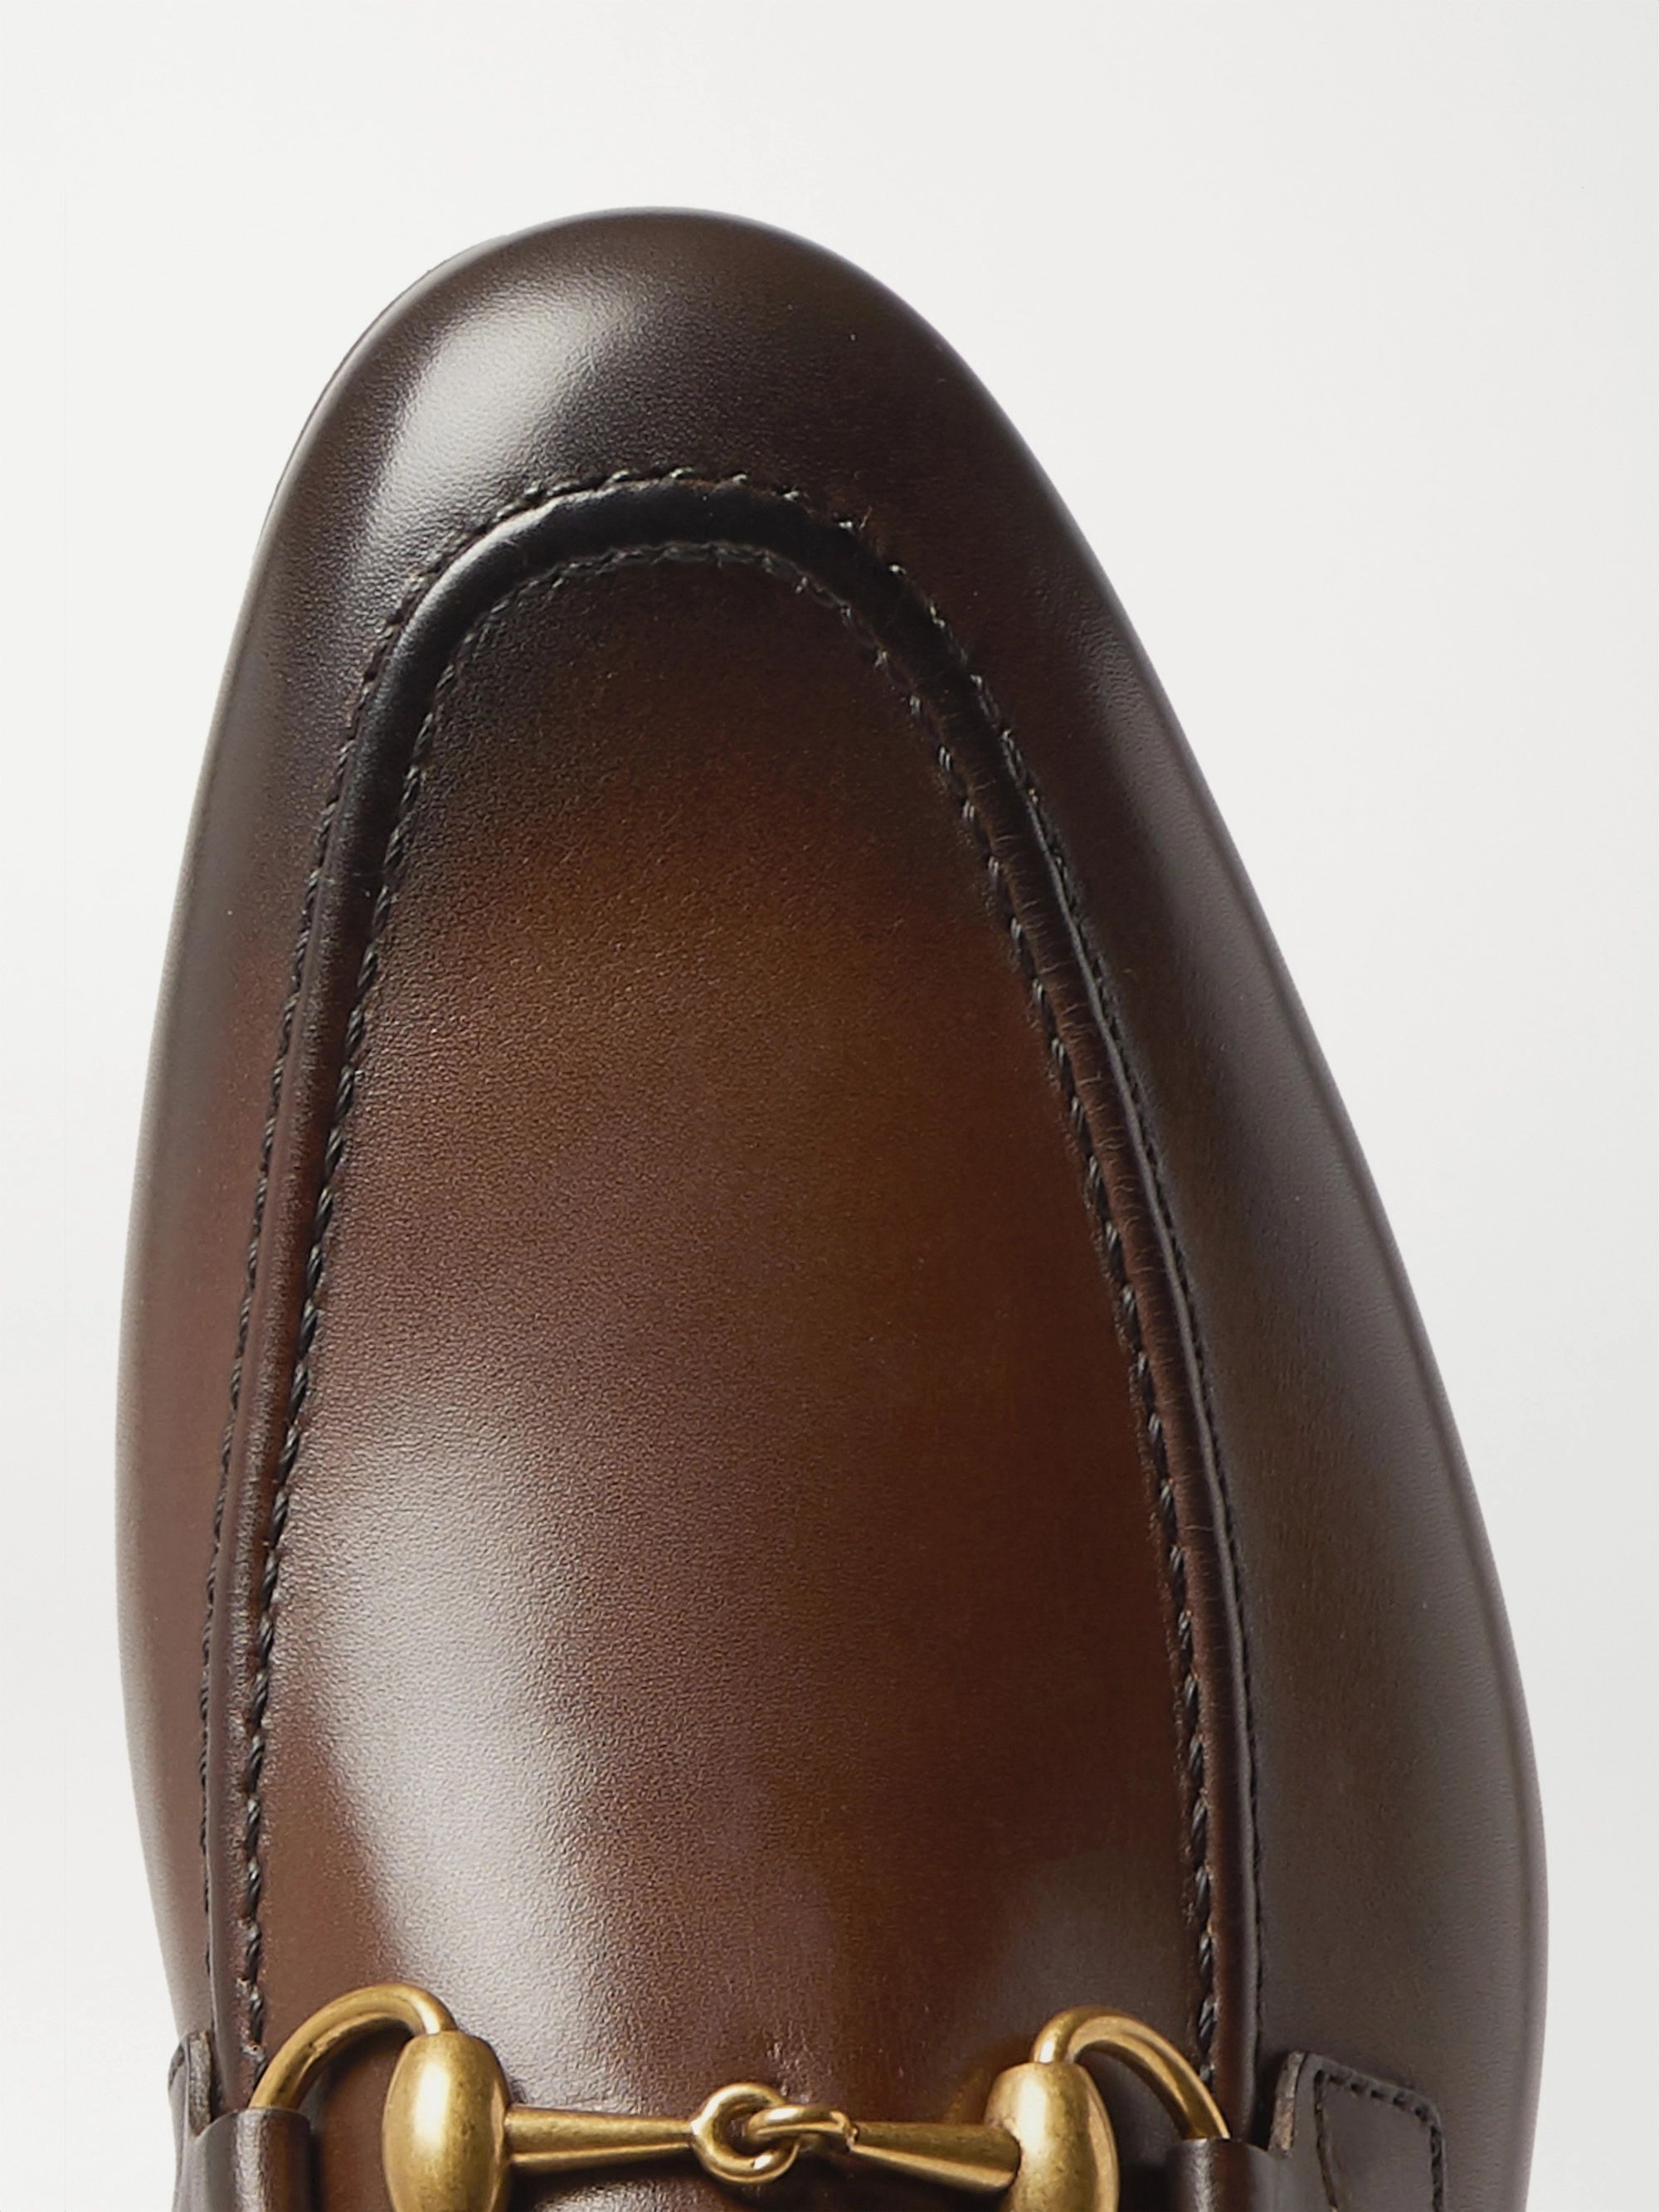 Gucci Jordaan Horsebit Burnished-Leather Loafers